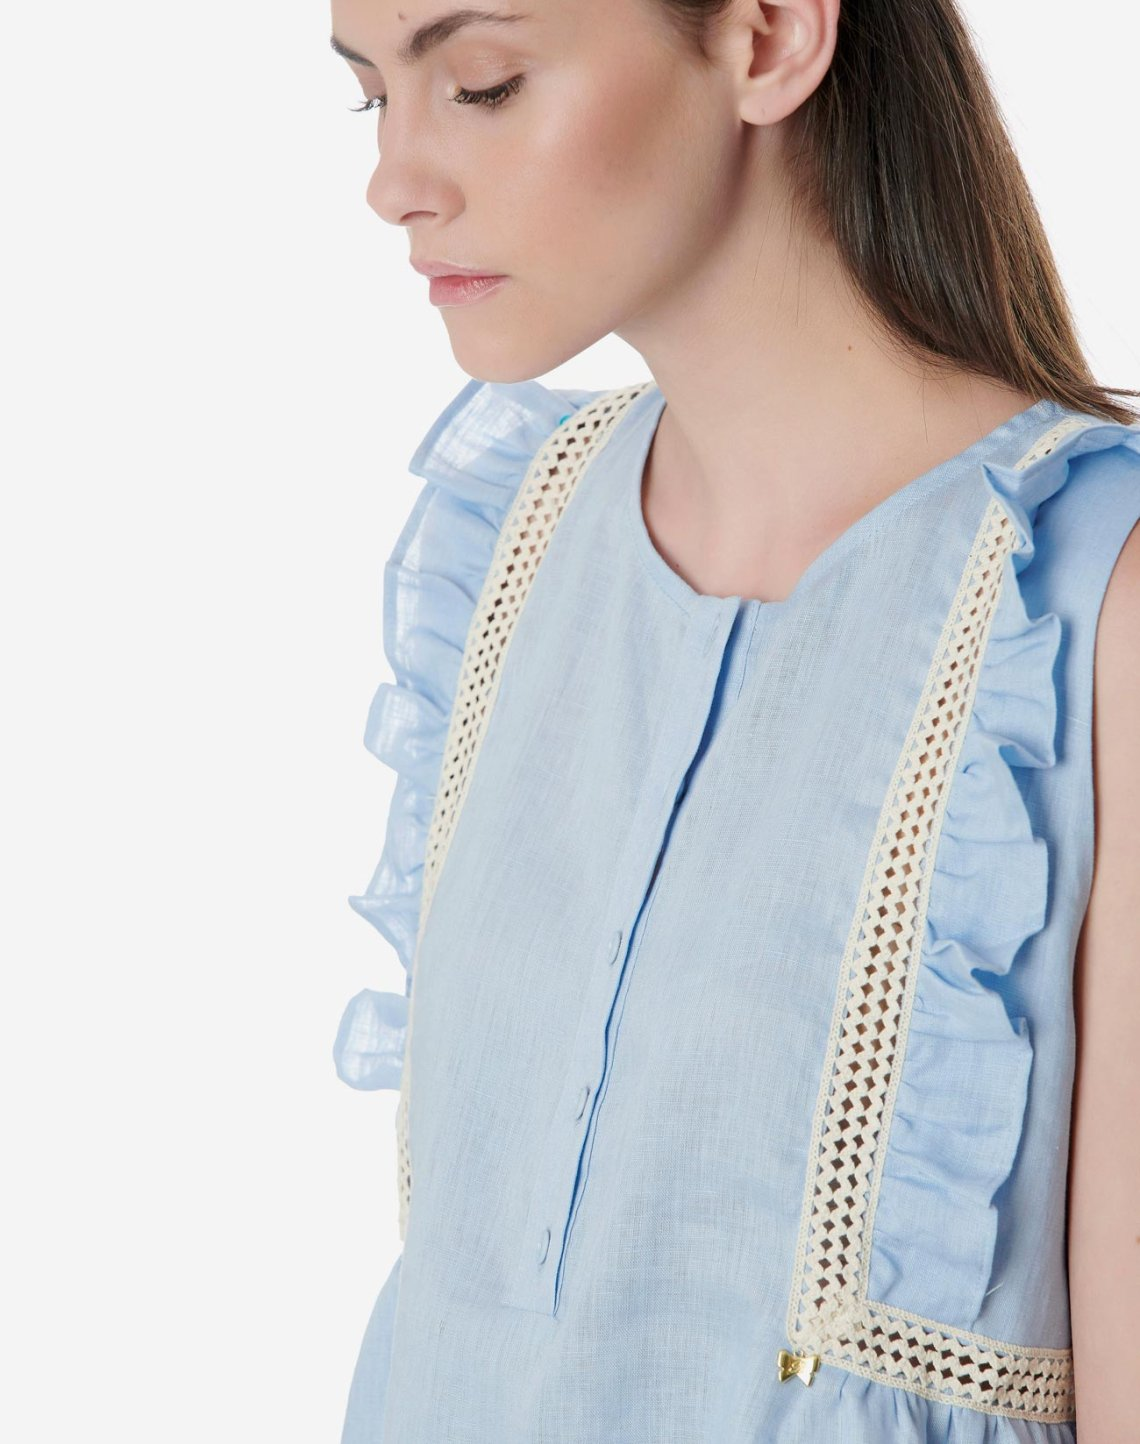 Linen top with ruffles